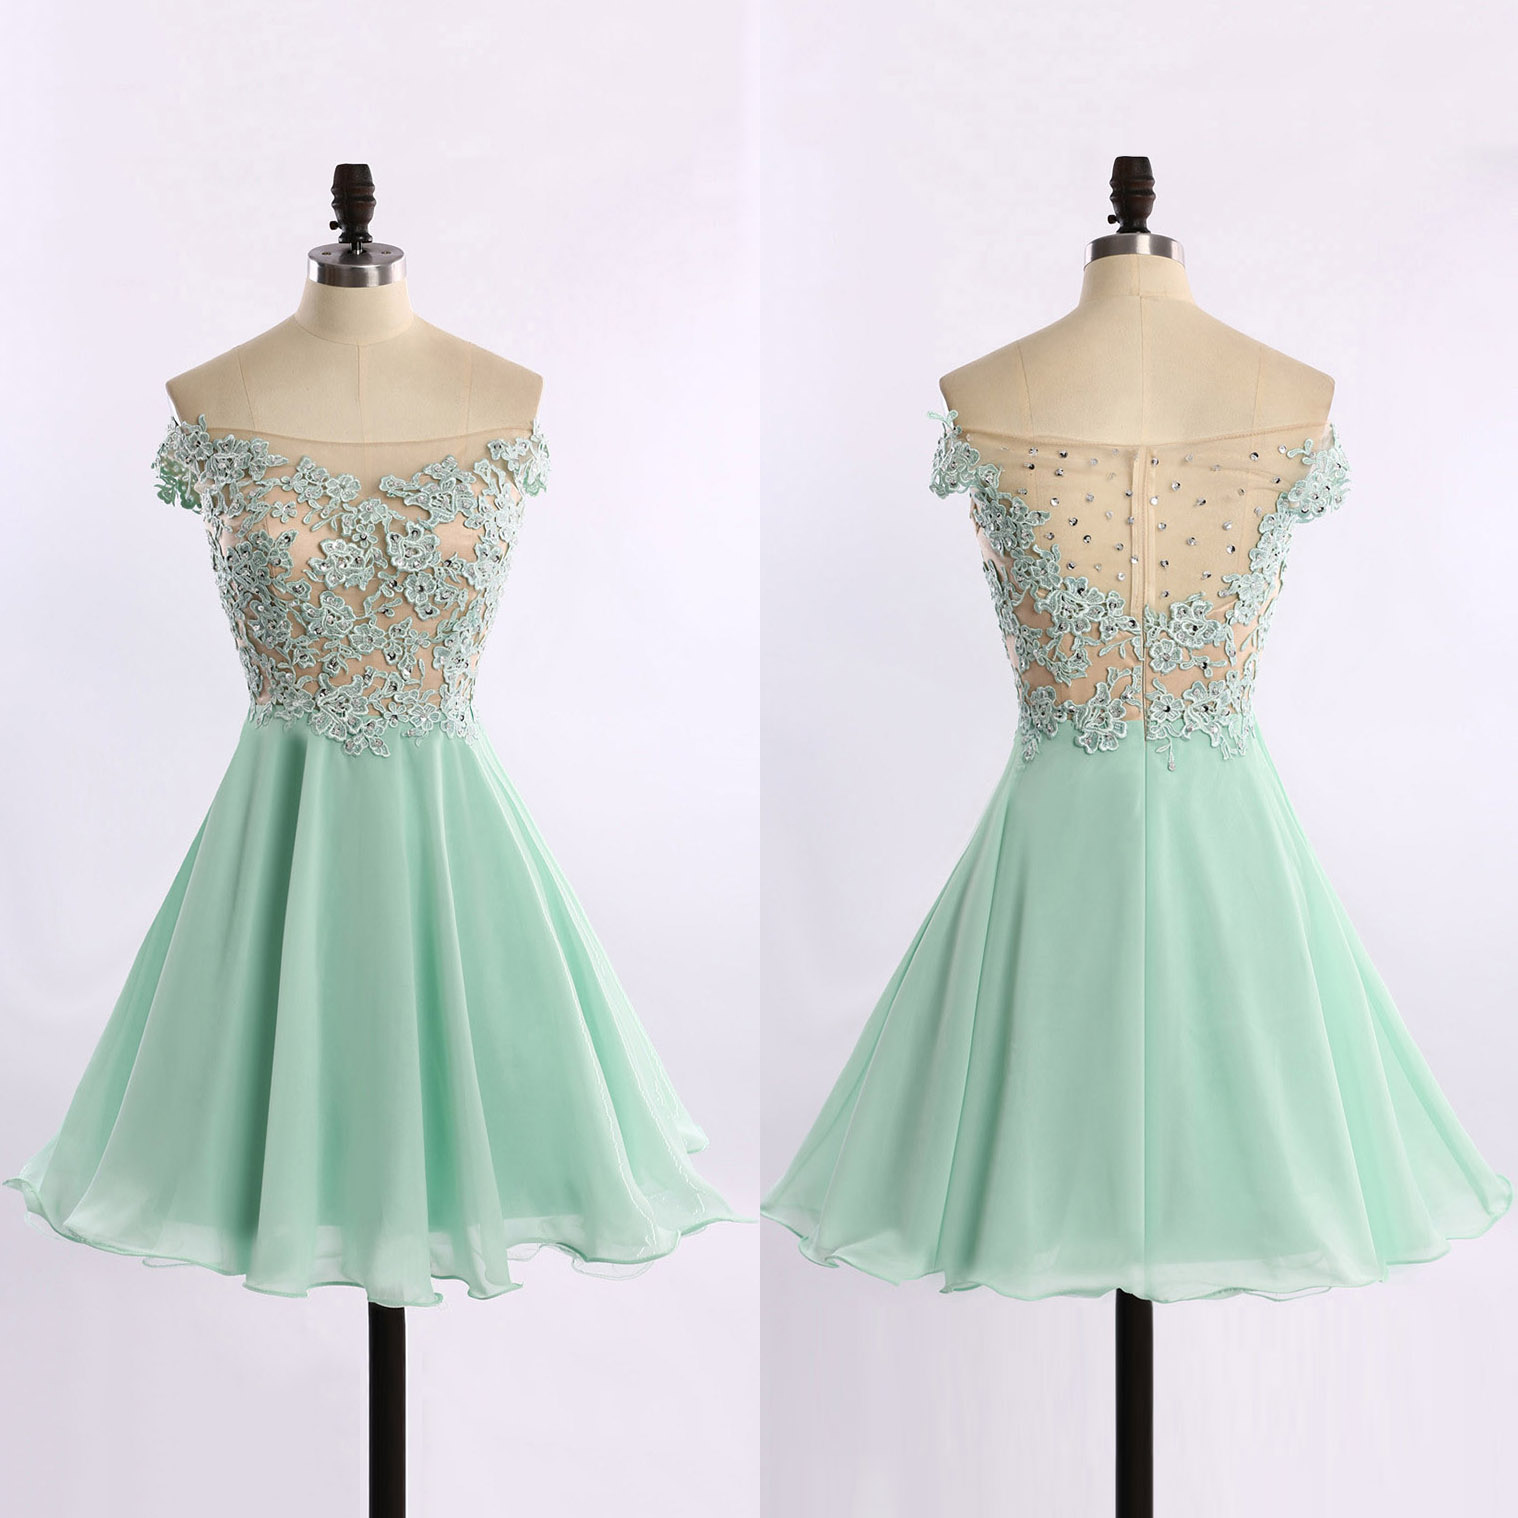 532b899d4801 Off-the-shoulder Chiffon Prom Dresses with Lace Appliques, See-through Tulle